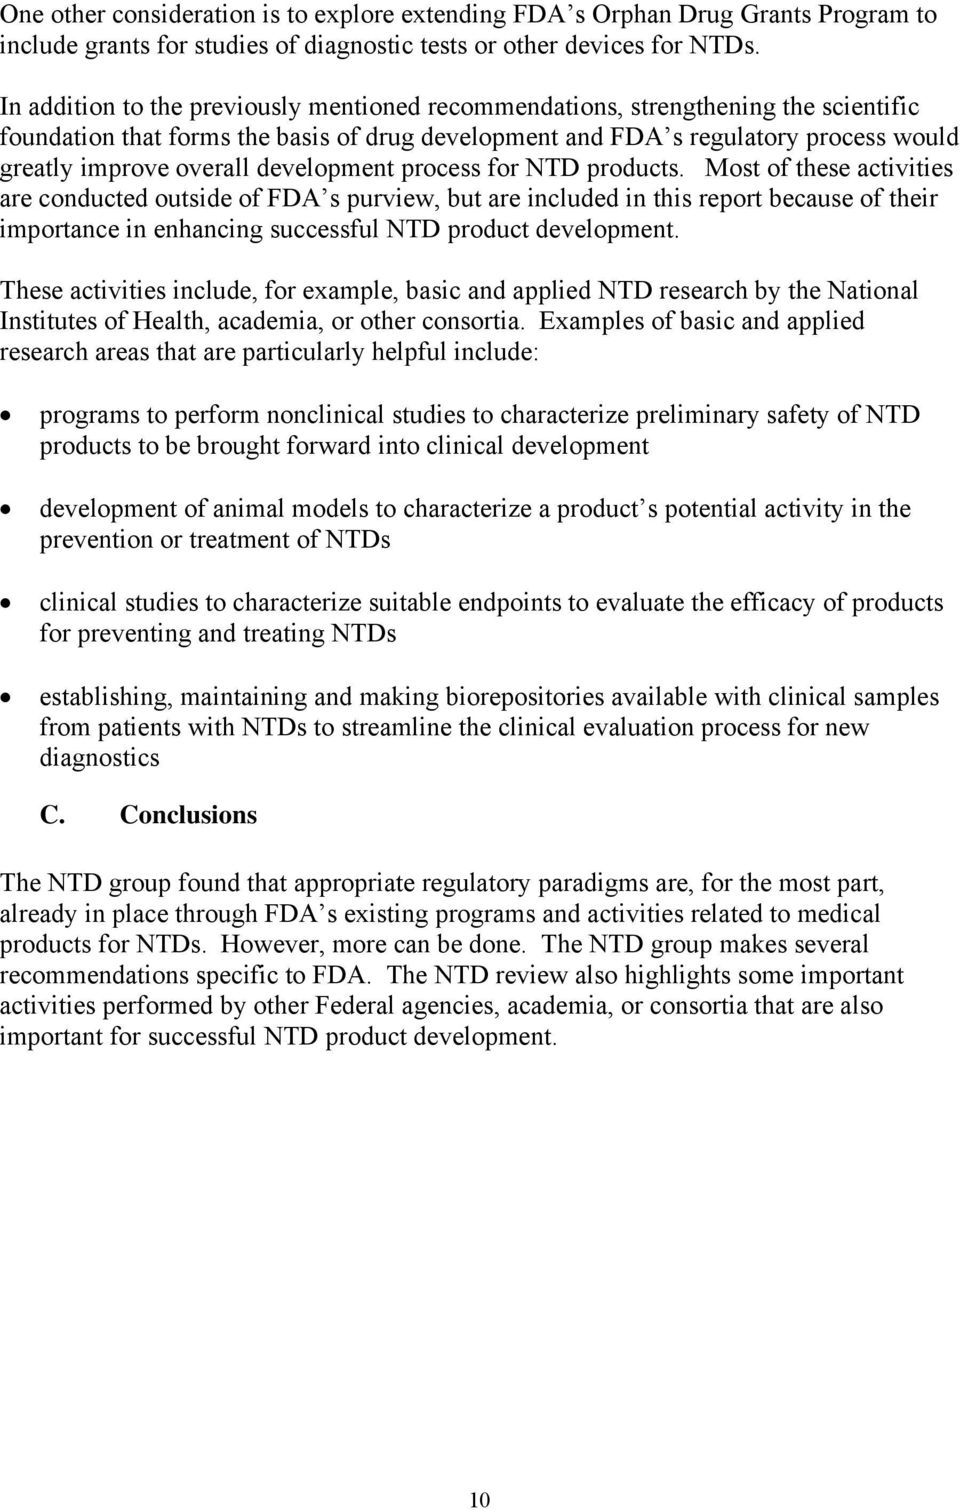 development process for NTD products.